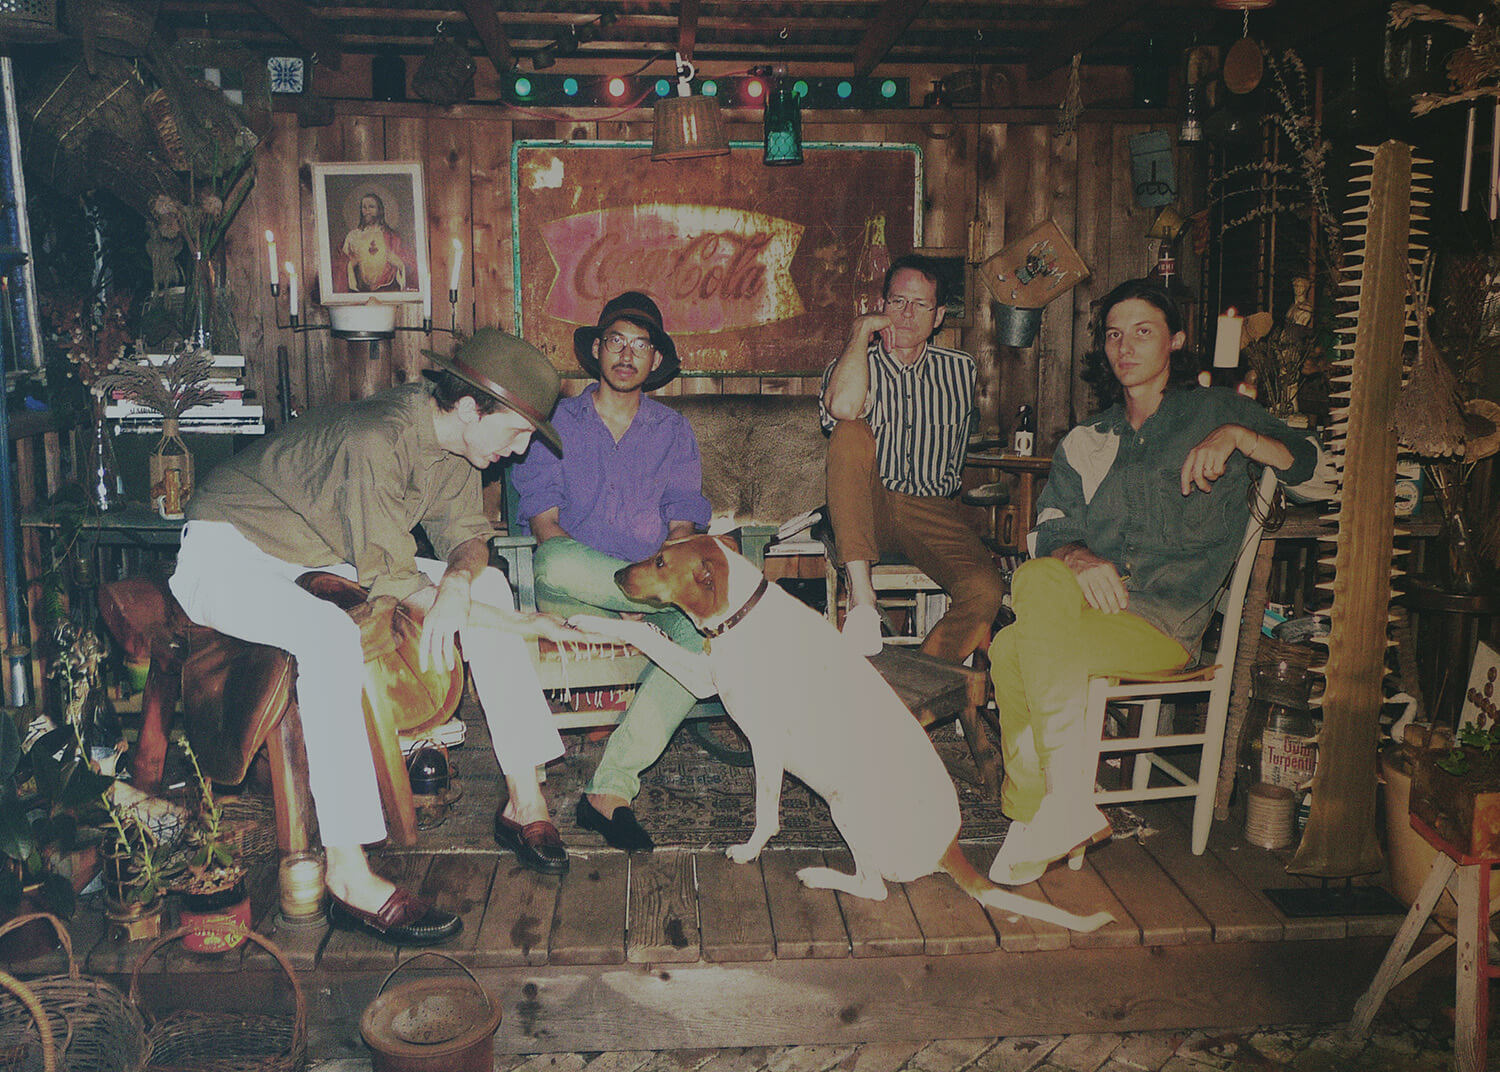 Deerhunter announce new tour dates, Including shows at Primavera, Field Day Festival, and Poppy and Harriets